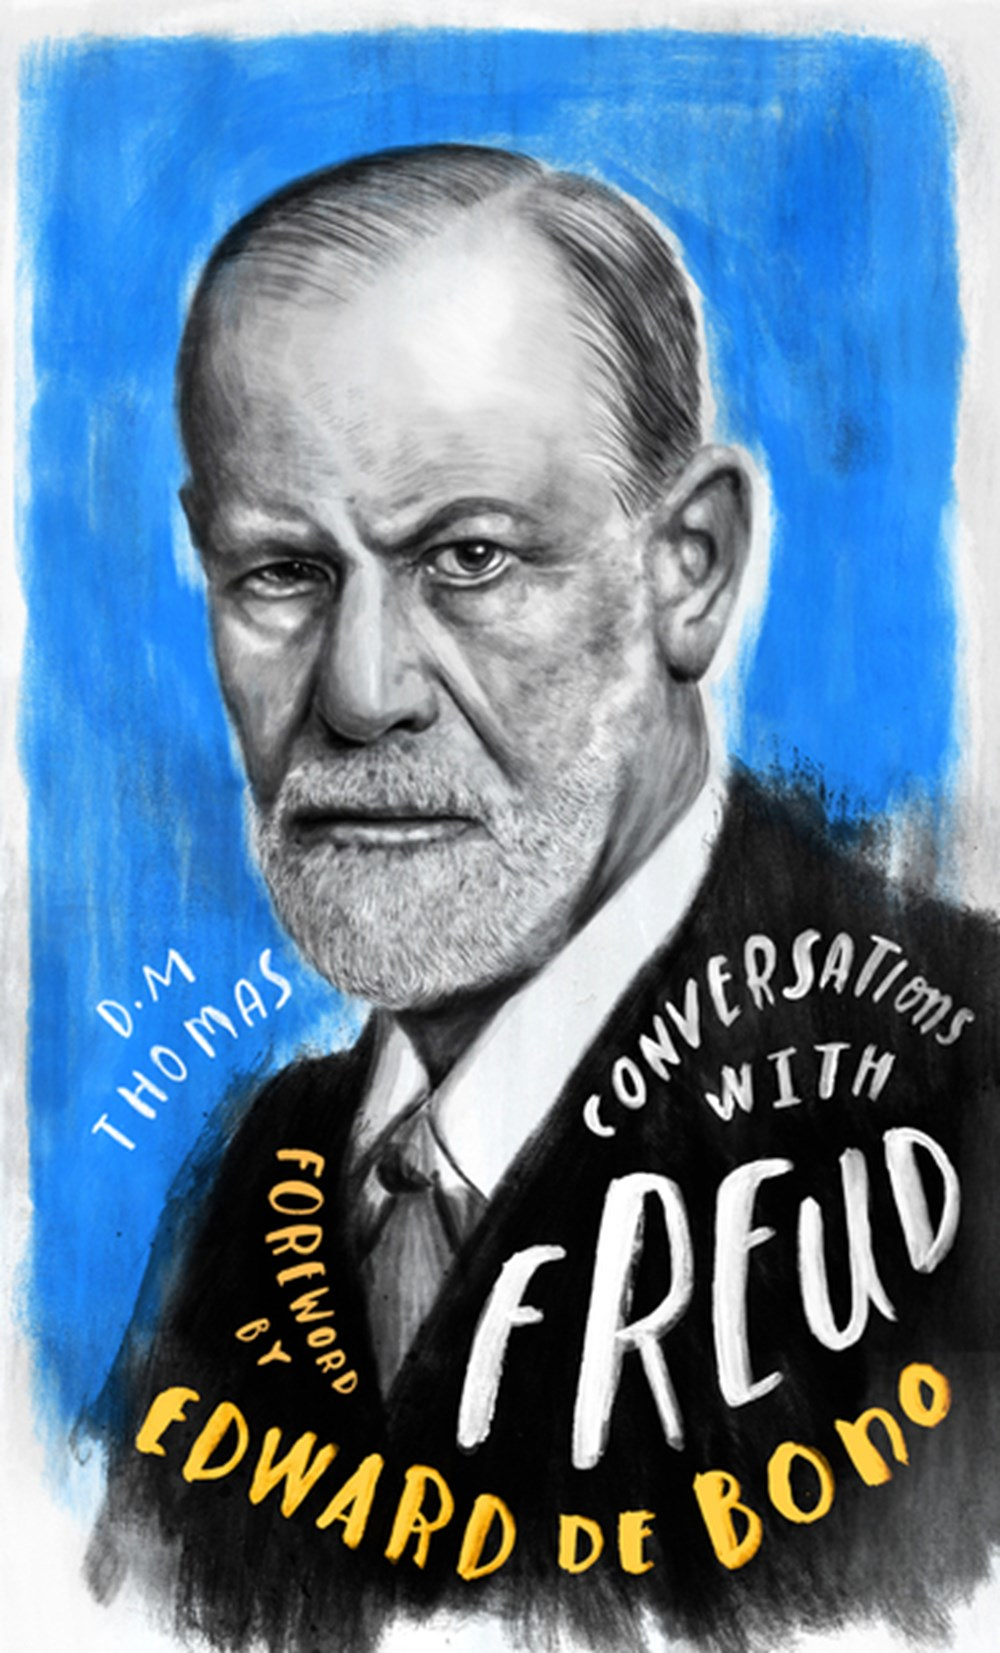 Conversations with Freud A Fictional Dialogue Based on Biographical Facts